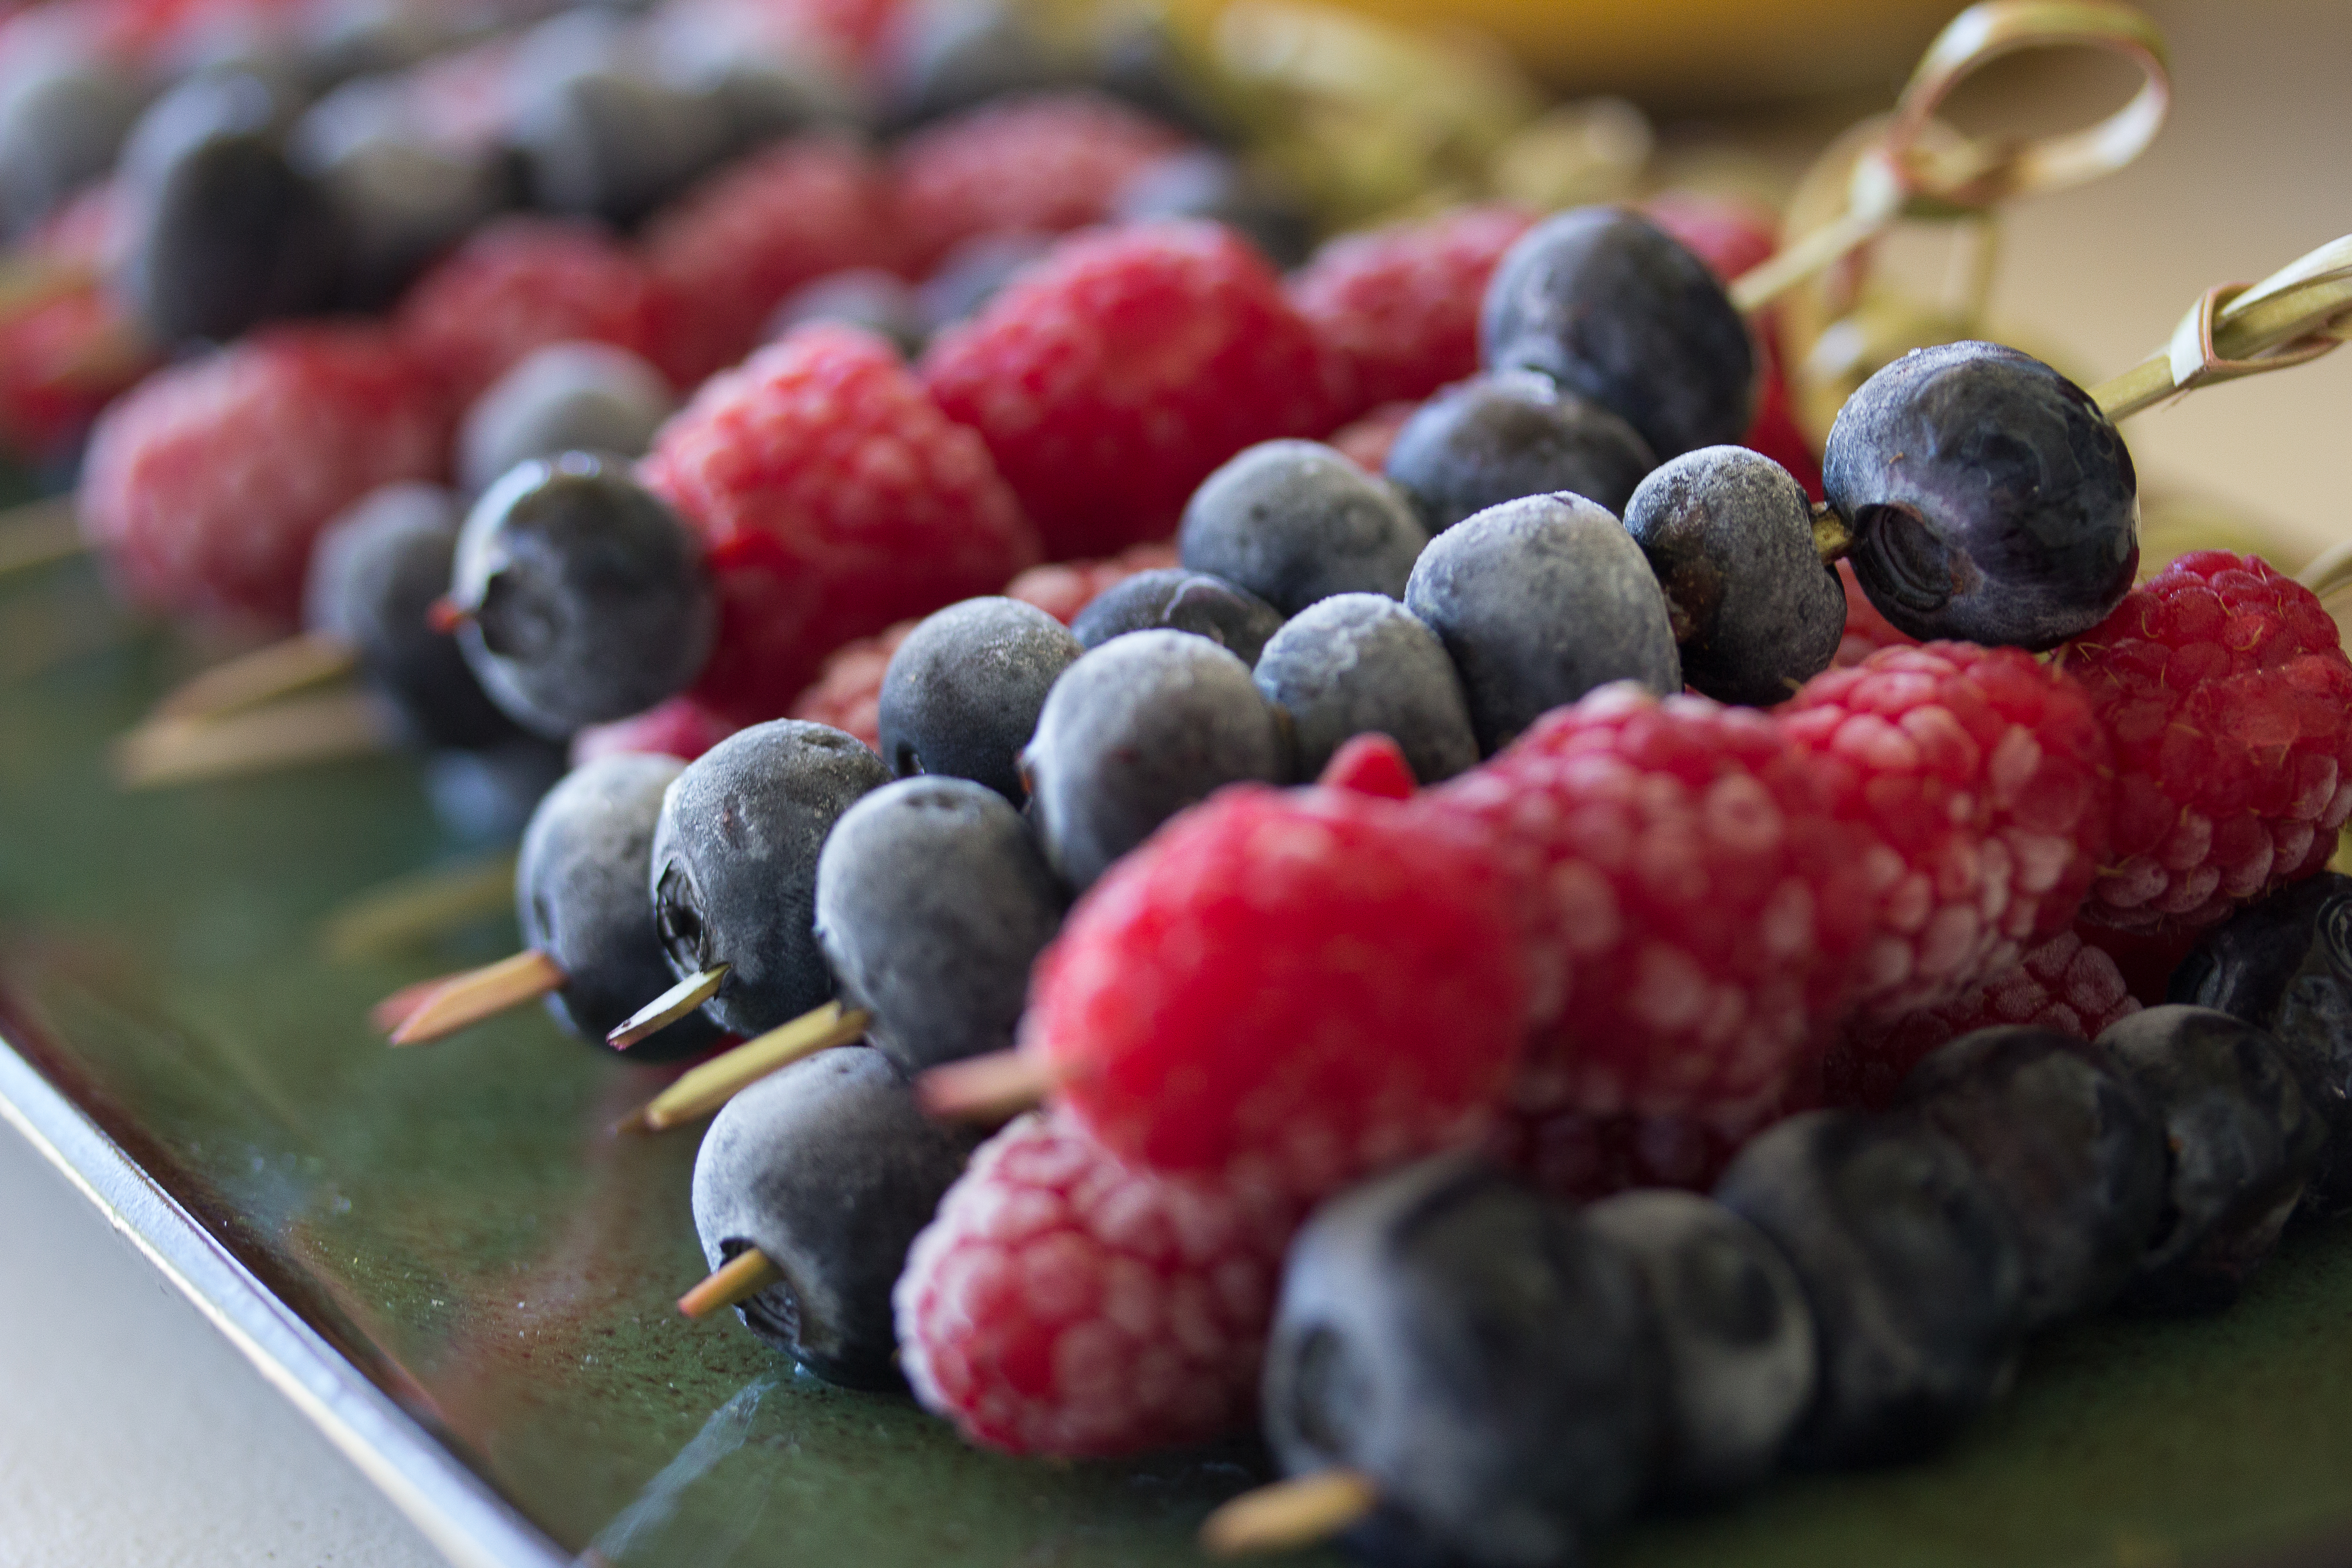 Raspberry and Blueberry Skewers